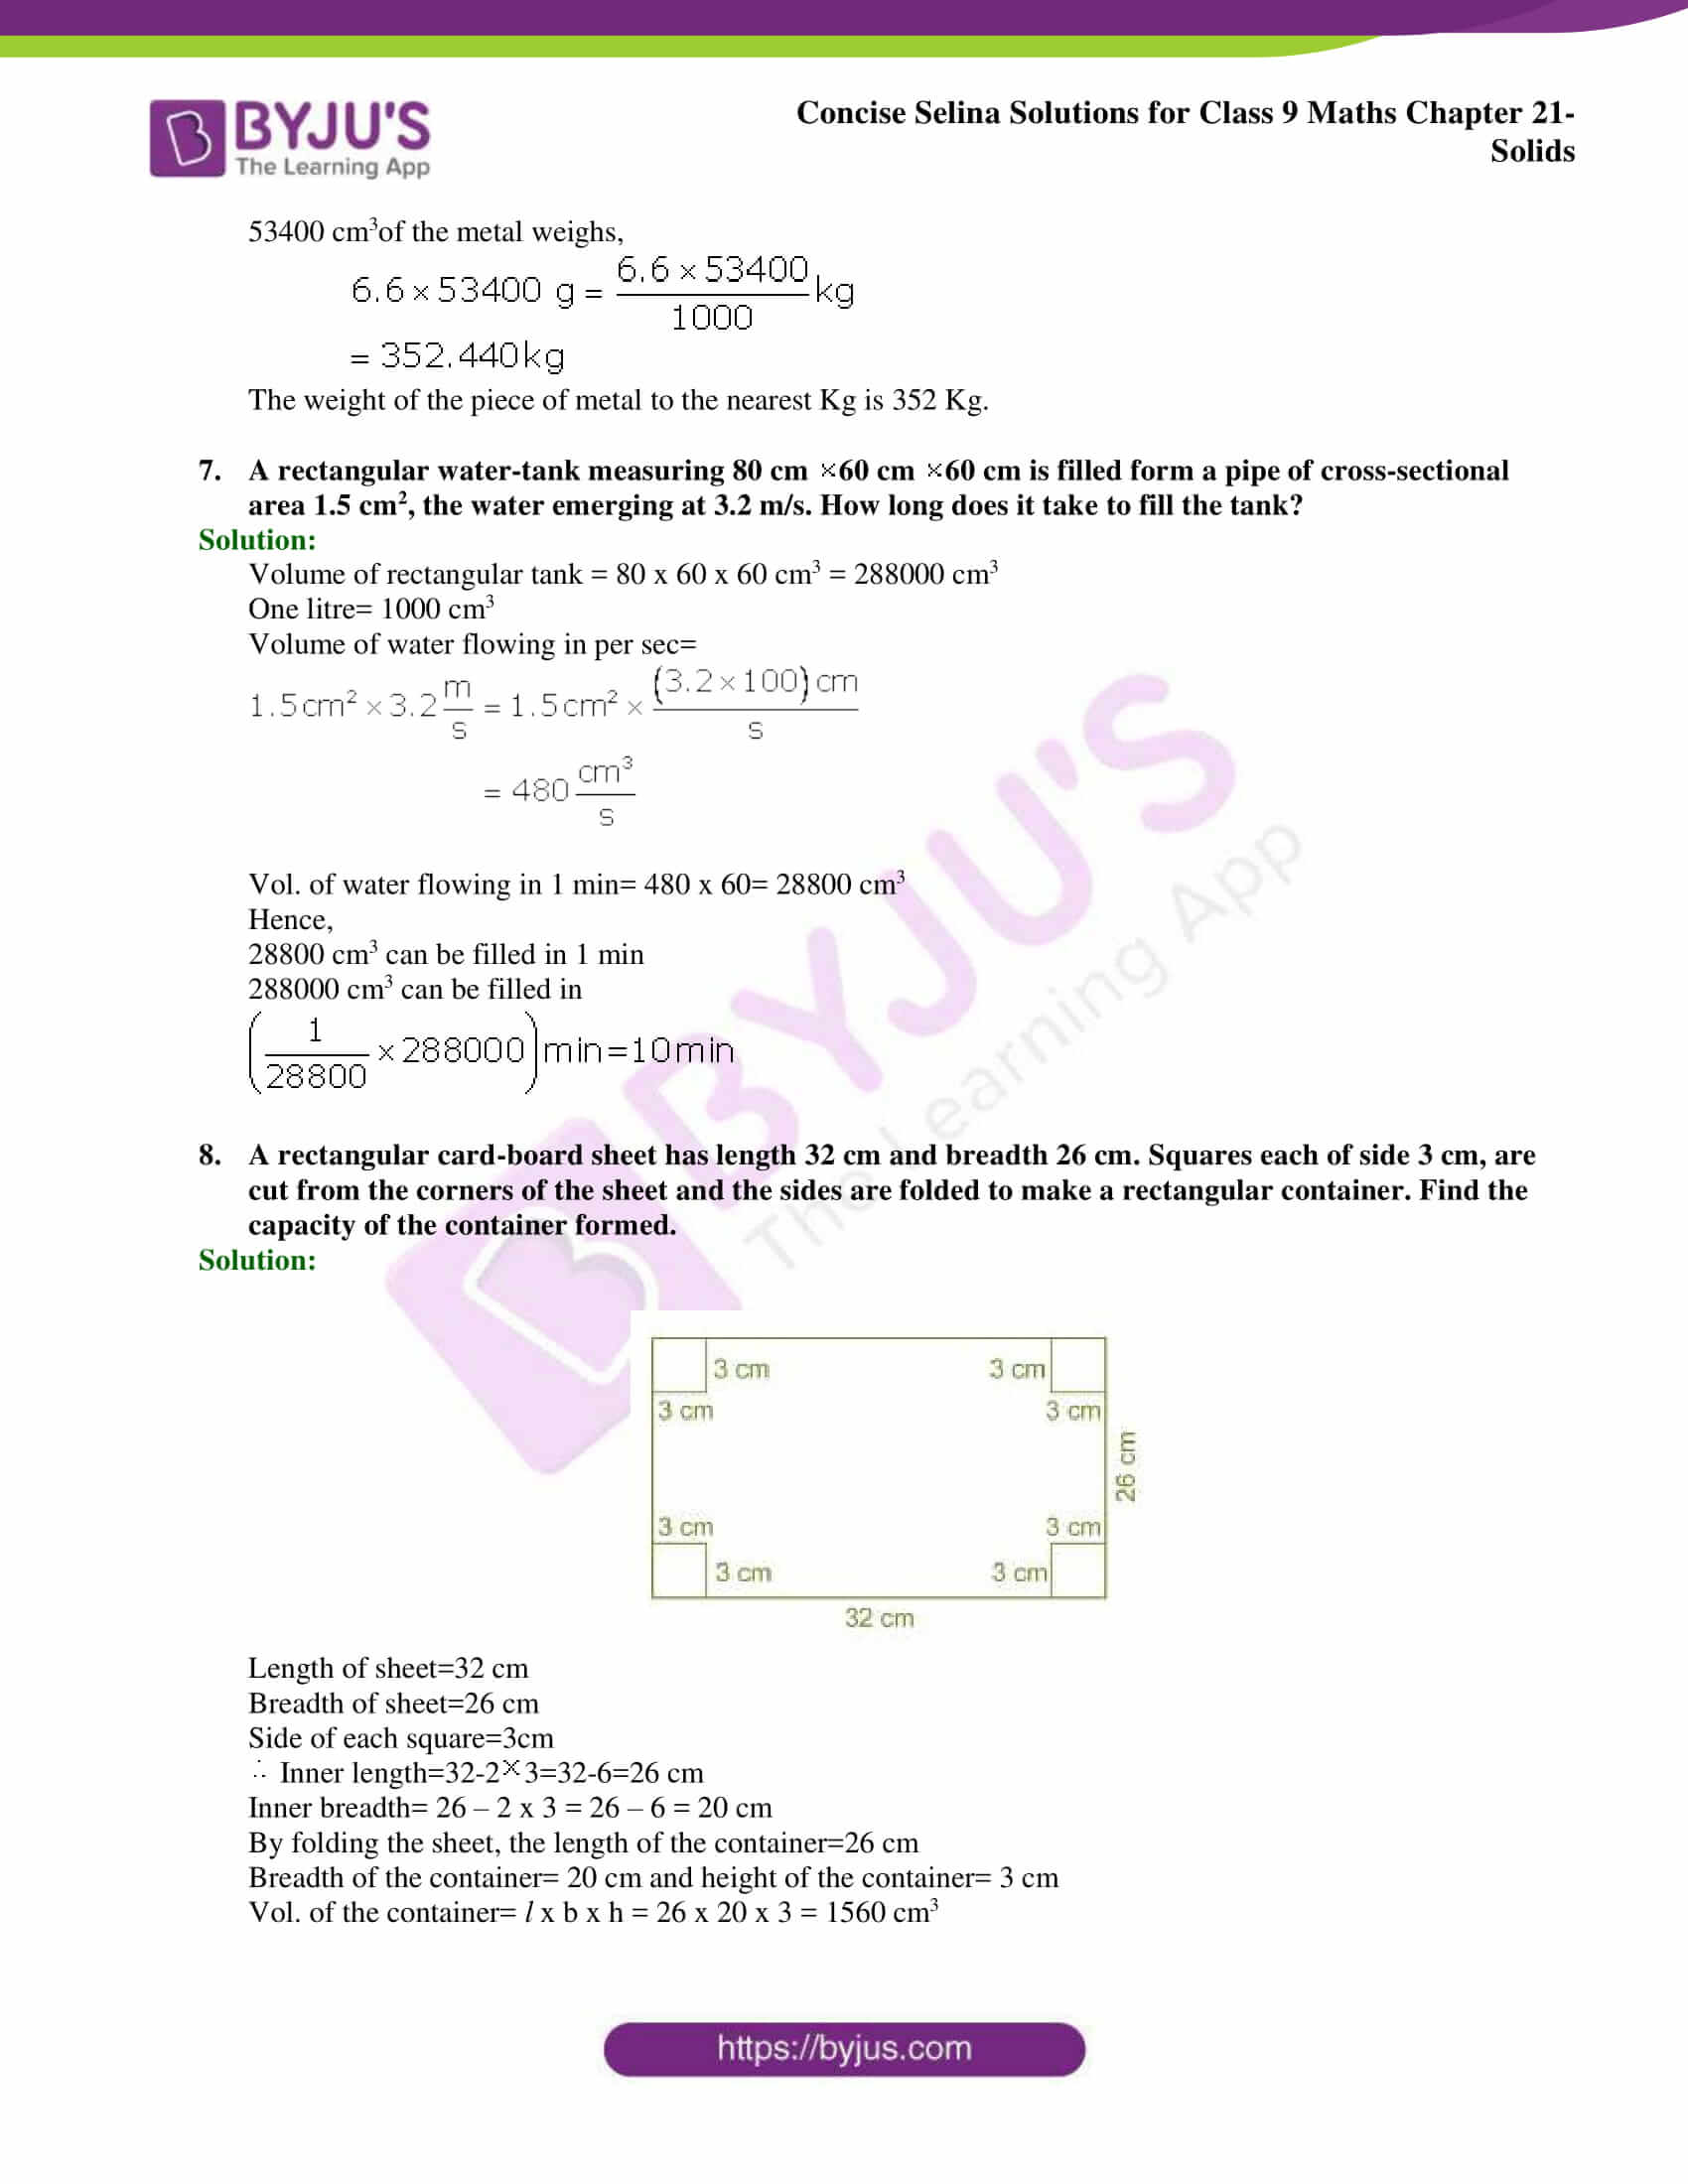 Concise Selina Solutions Class 9 Maths Chapter 21 Solids part 11